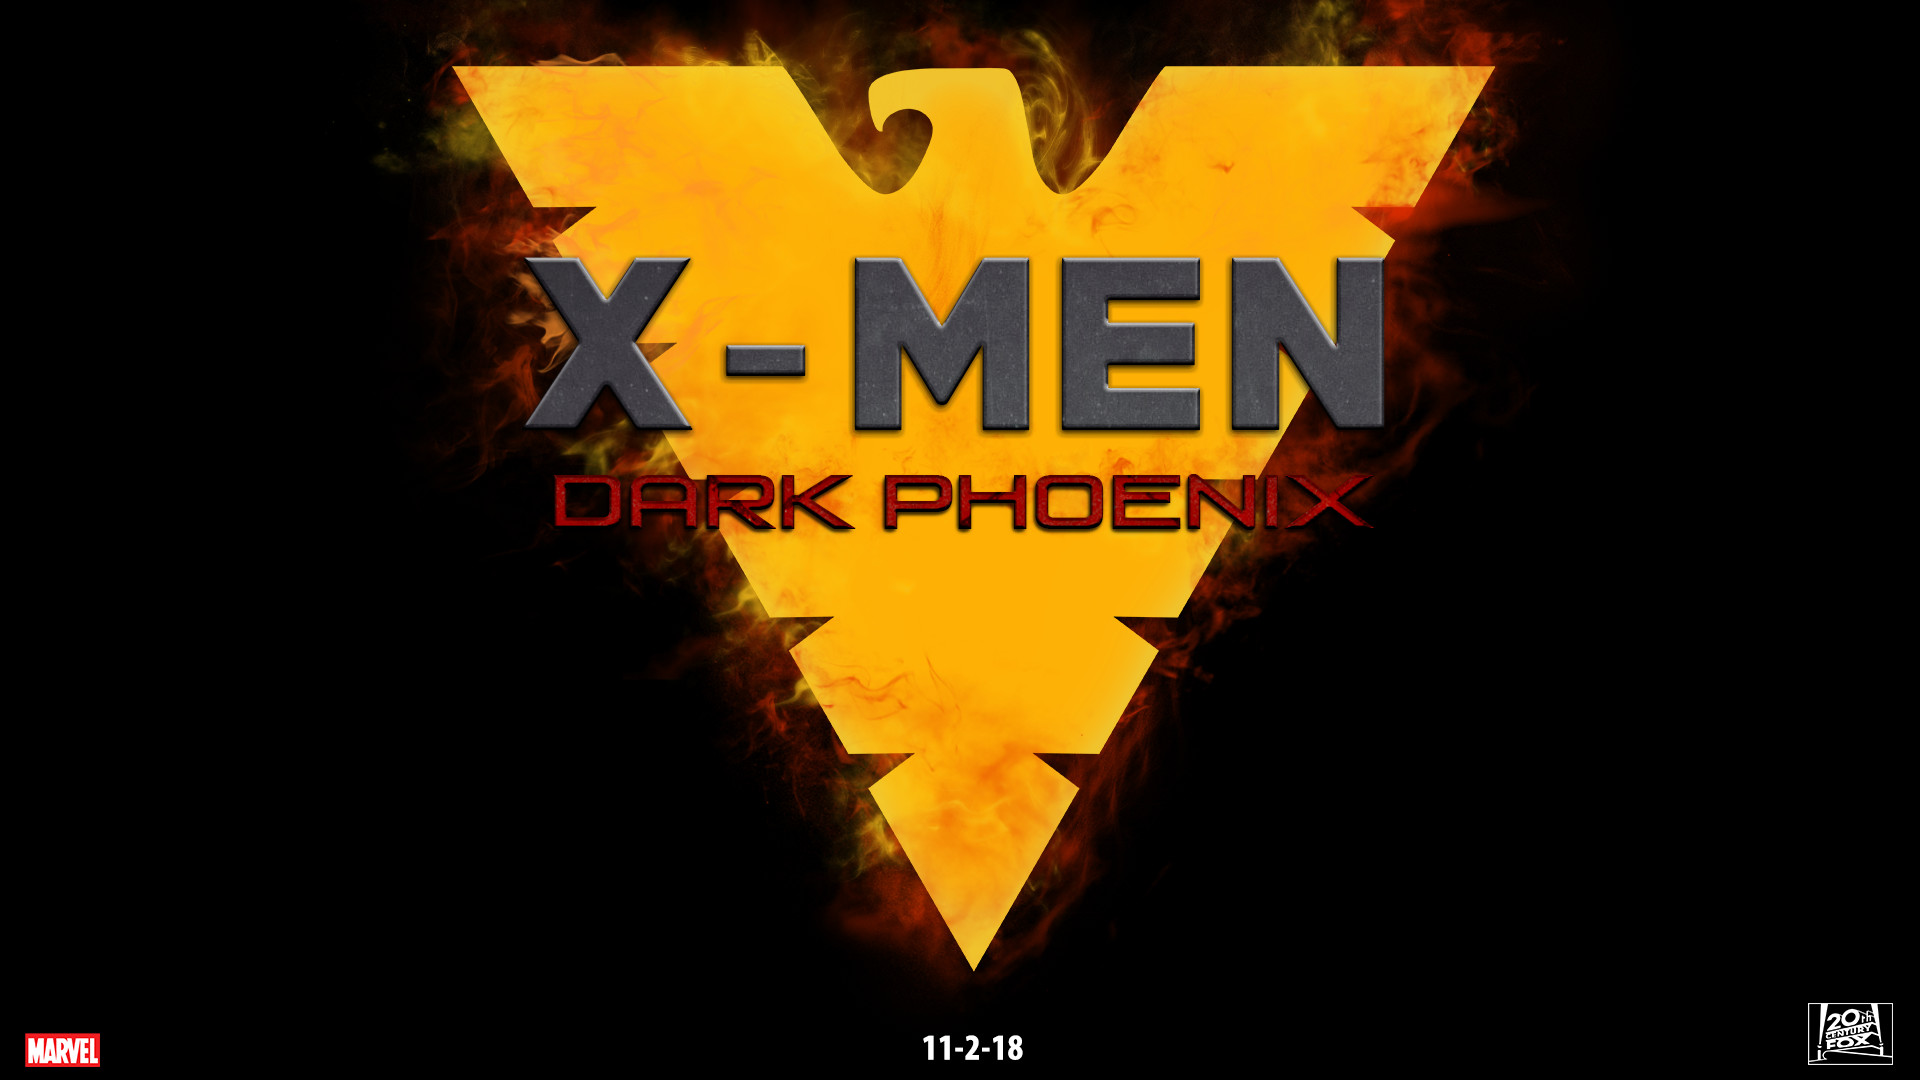 1920x1080 ... X-Men Dark Phoenix fanmade movie poster by chronoxiong